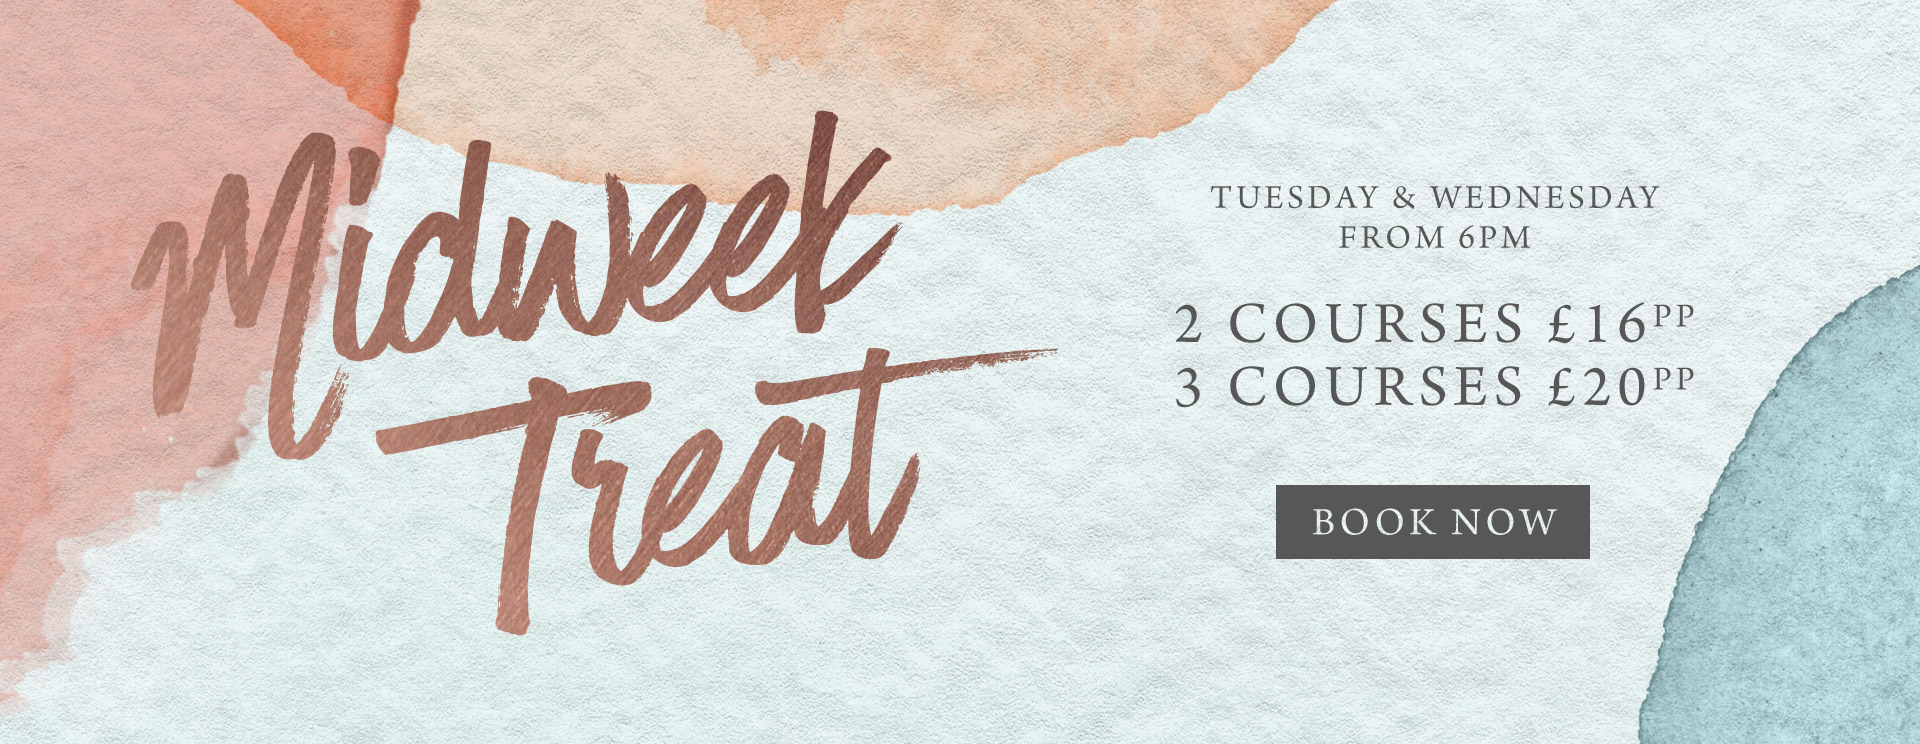 Midweek treat at The Rambler's Rest - Book now